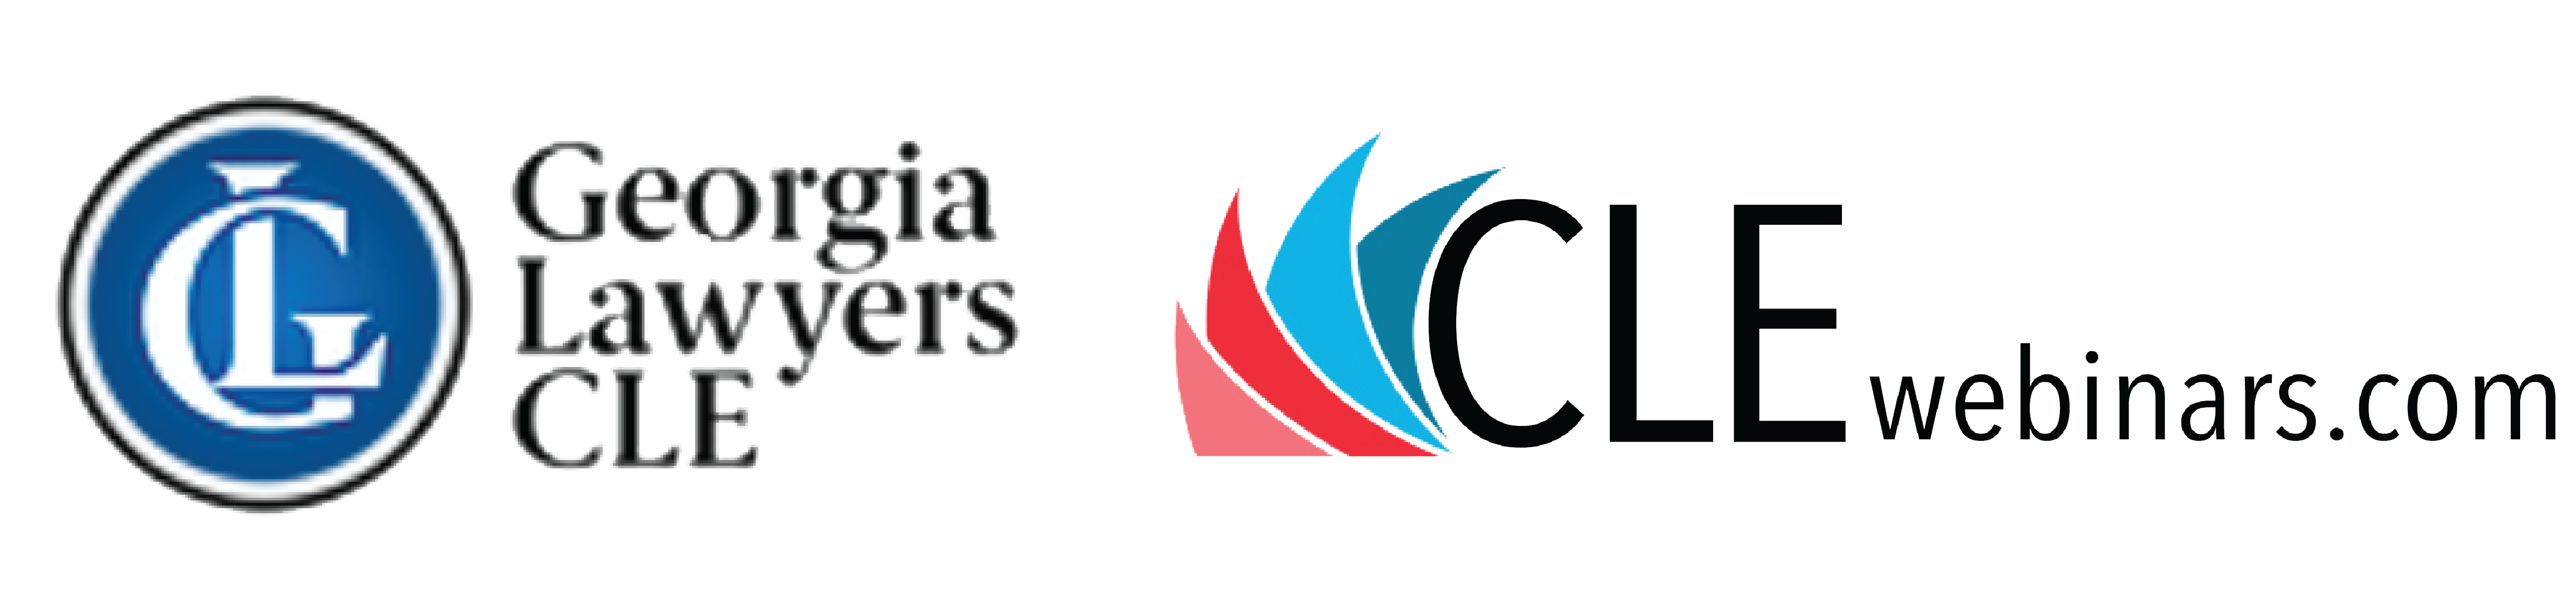 Combo GA/CLEW logo without background